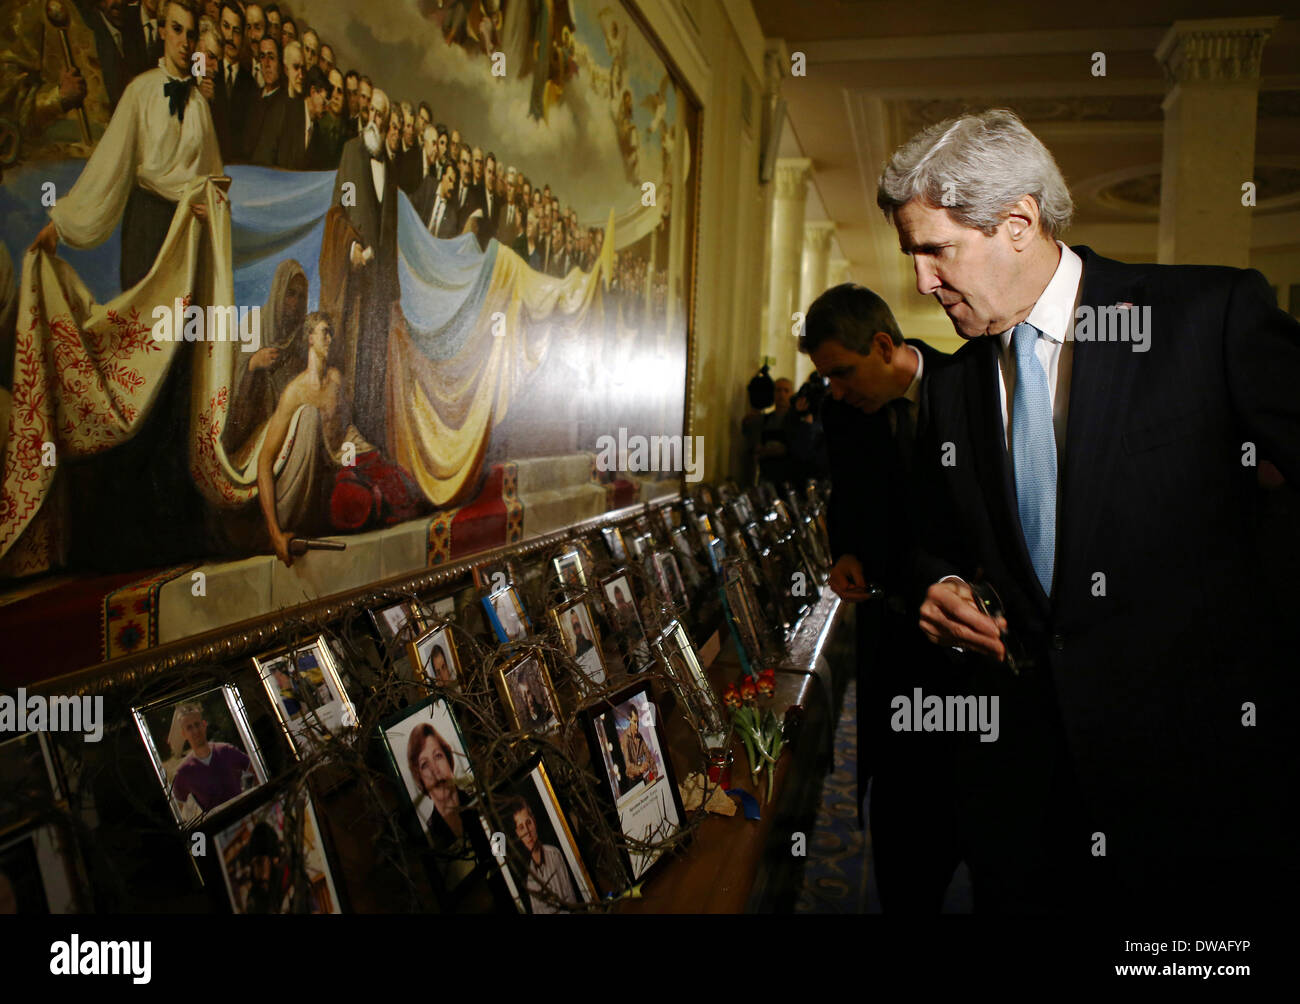 US Secretary of State John Kerry looks at the photos of those killed at Maidan during anti-government protests at the Verkhovna Rada March 4, 2014 in Kiev, Ukraine. In a demonstration of support for Ukraine's fledgling government Kerry offered a $1 billion in American loan guarantee and pledges of technical assistance. - Stock Image